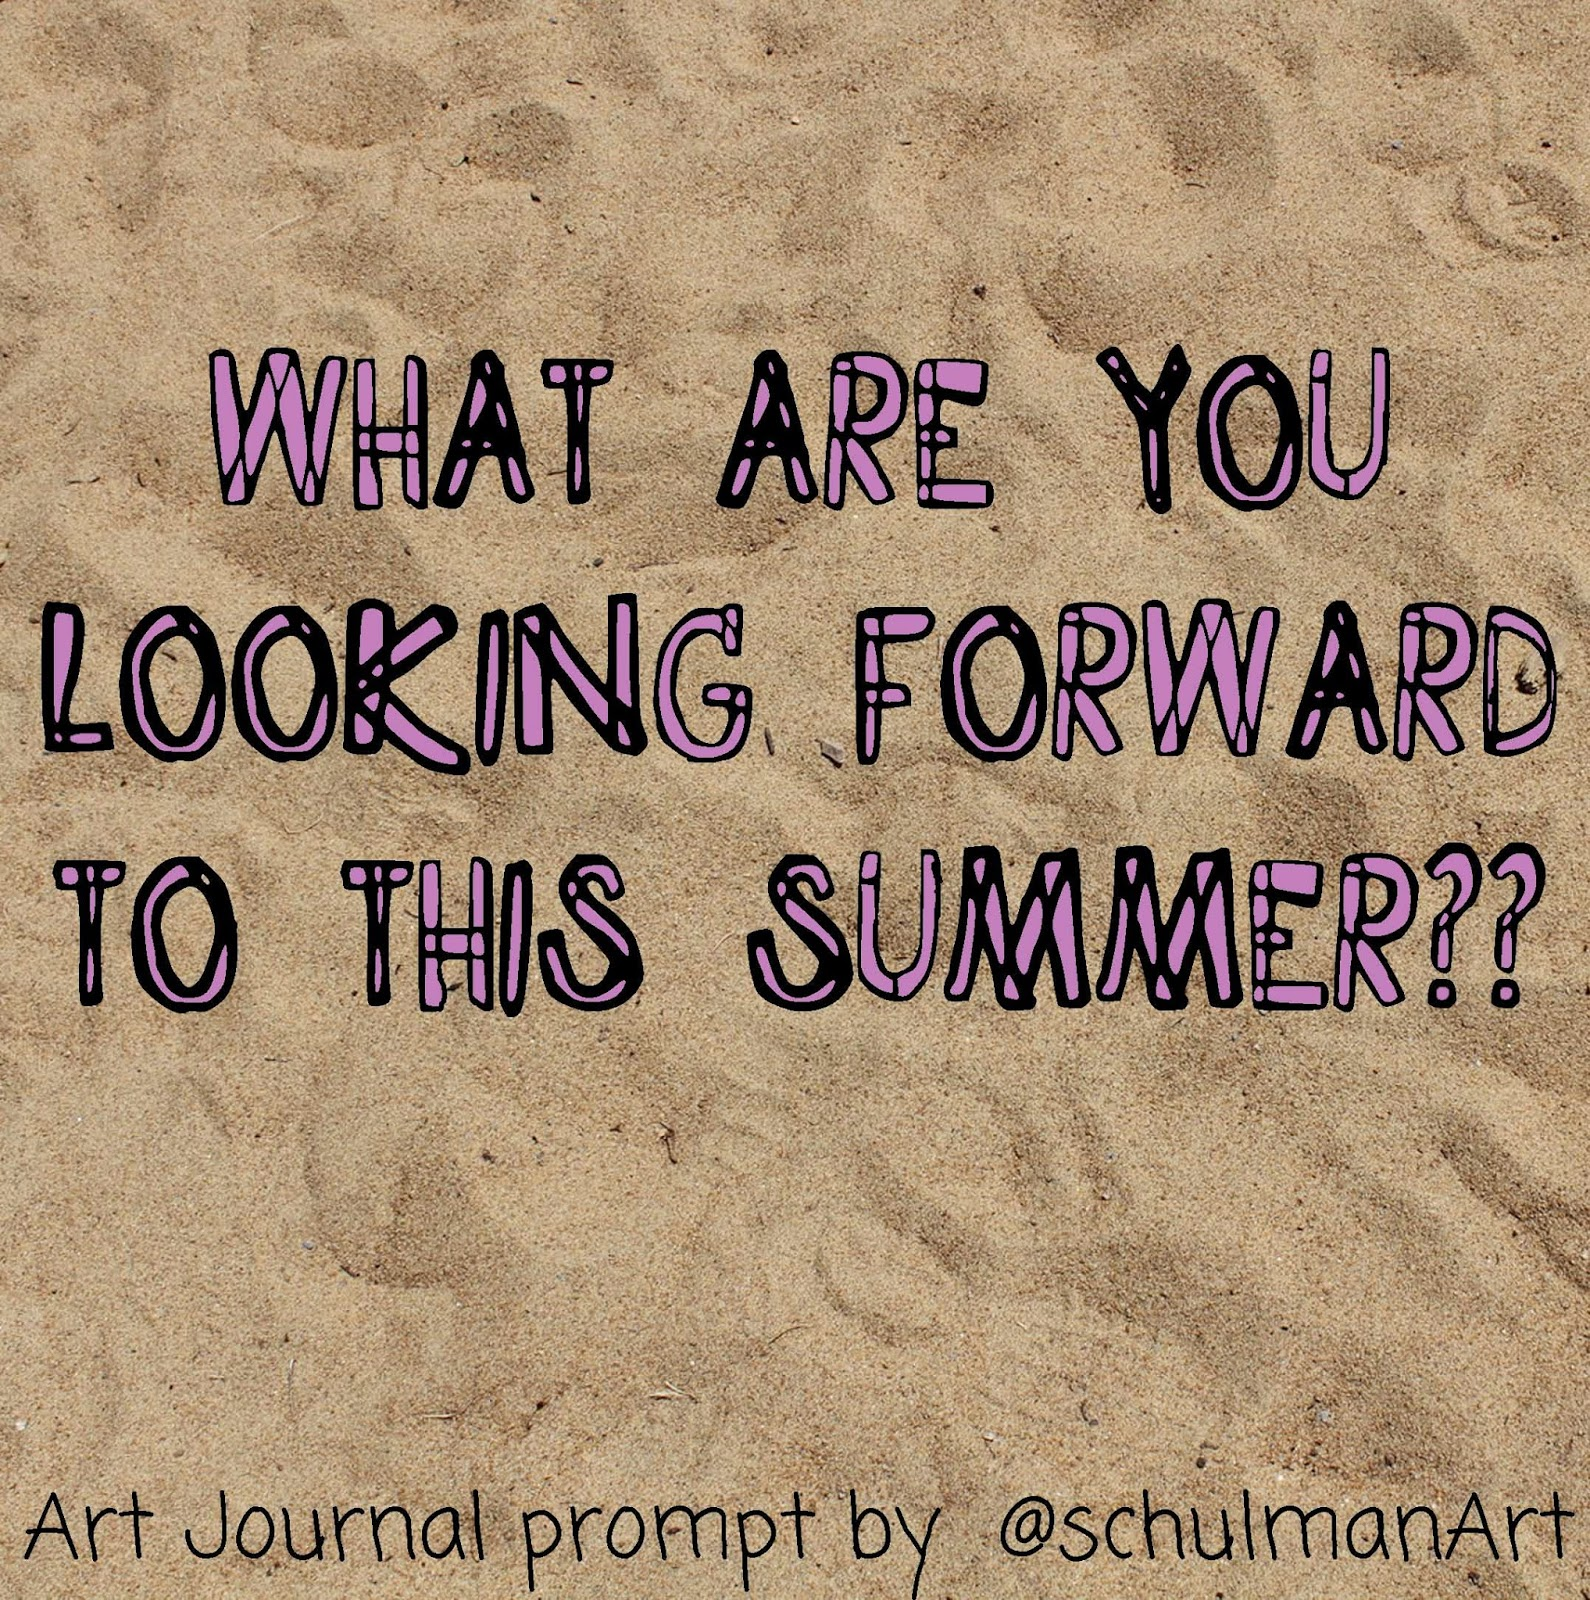 art journal ideas | #artjournal by @schulmanArt